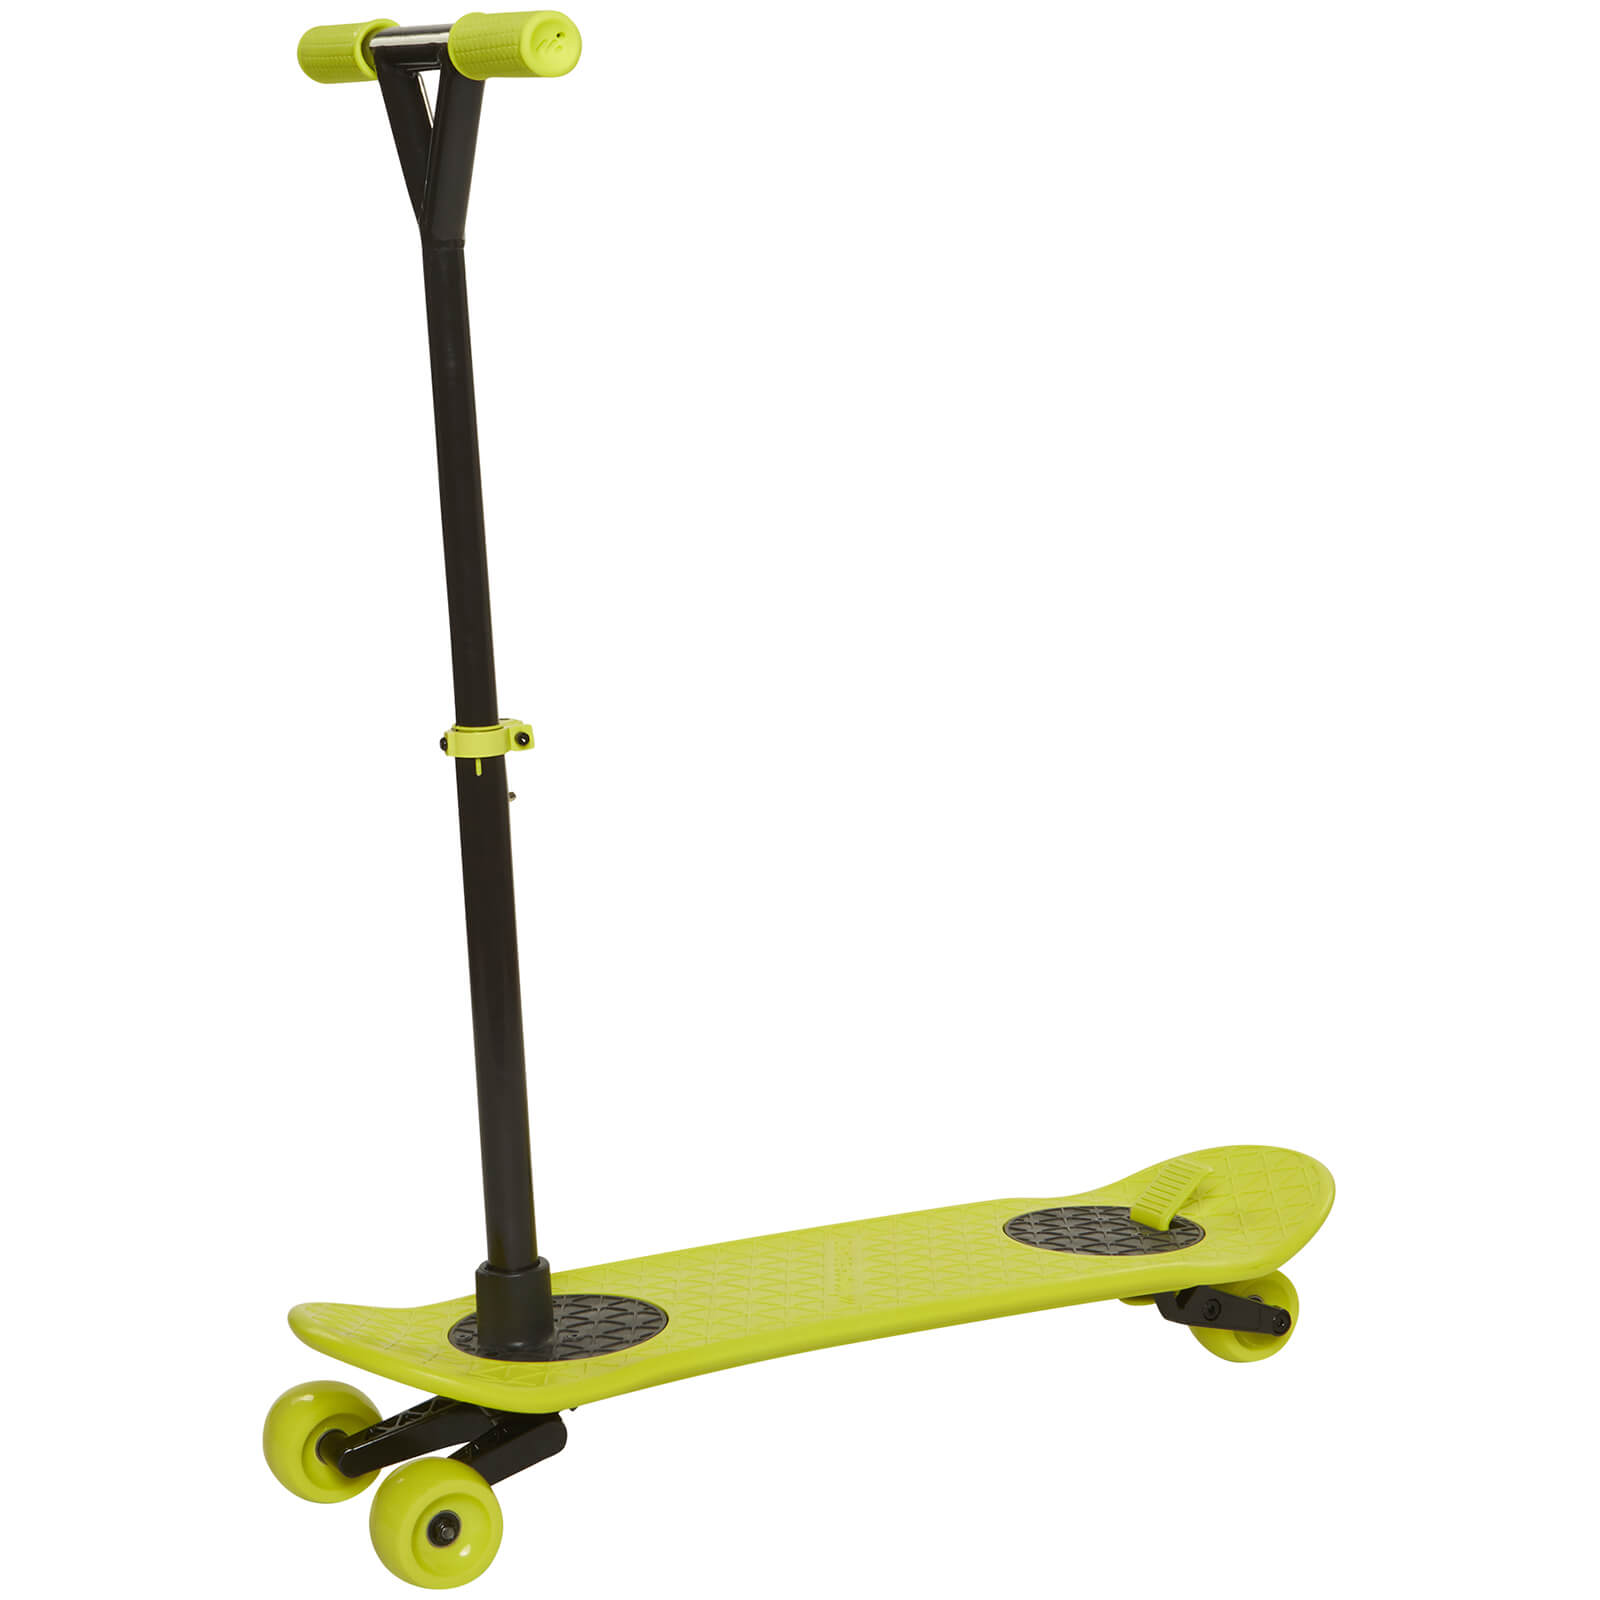 Jakks Pacific Morf Board Skate and Scoot